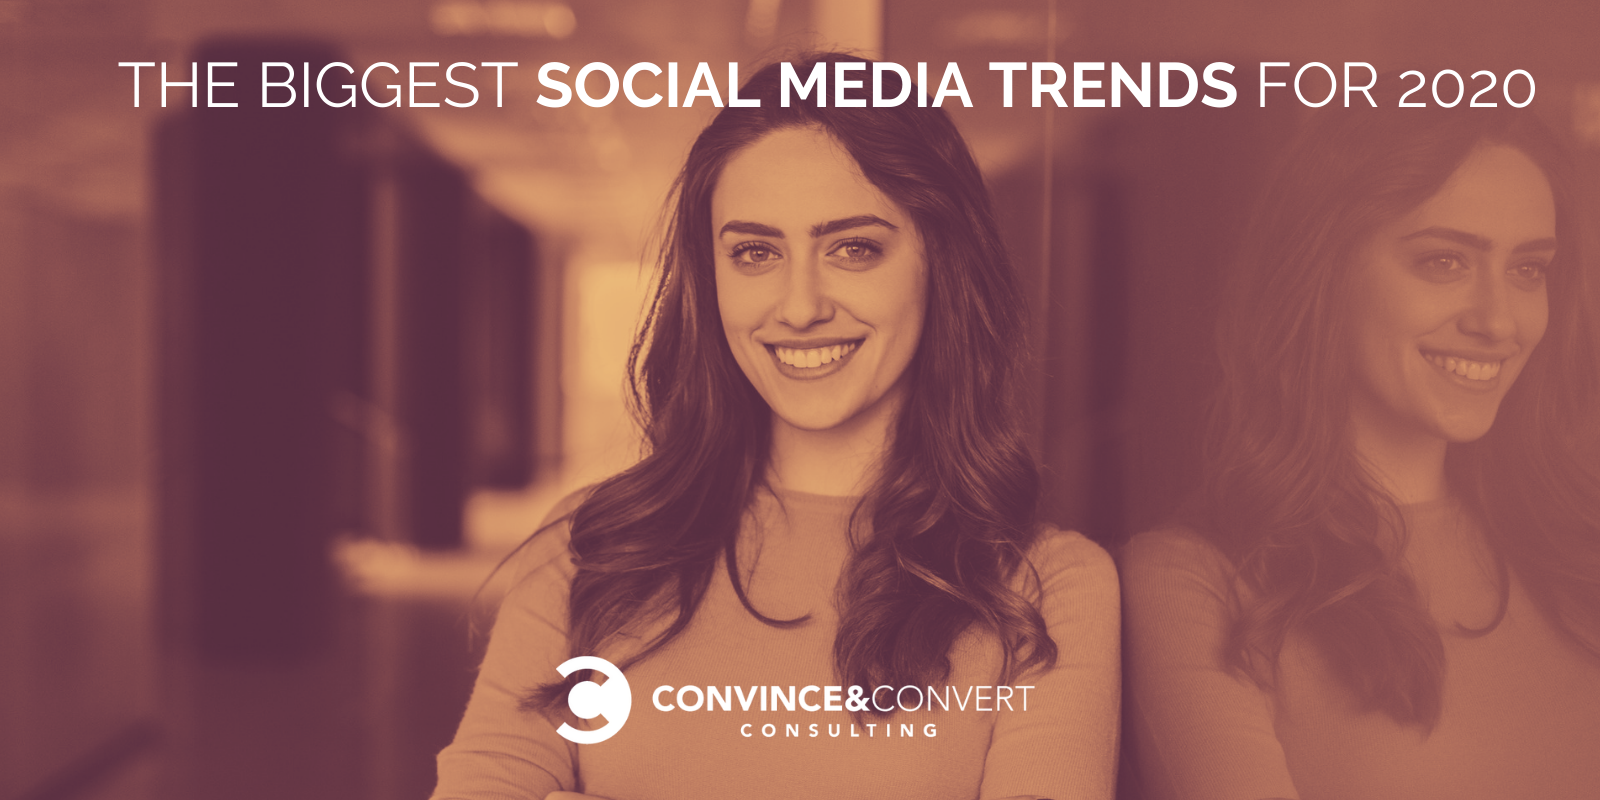 The Biggest Social Media Trends for 2020